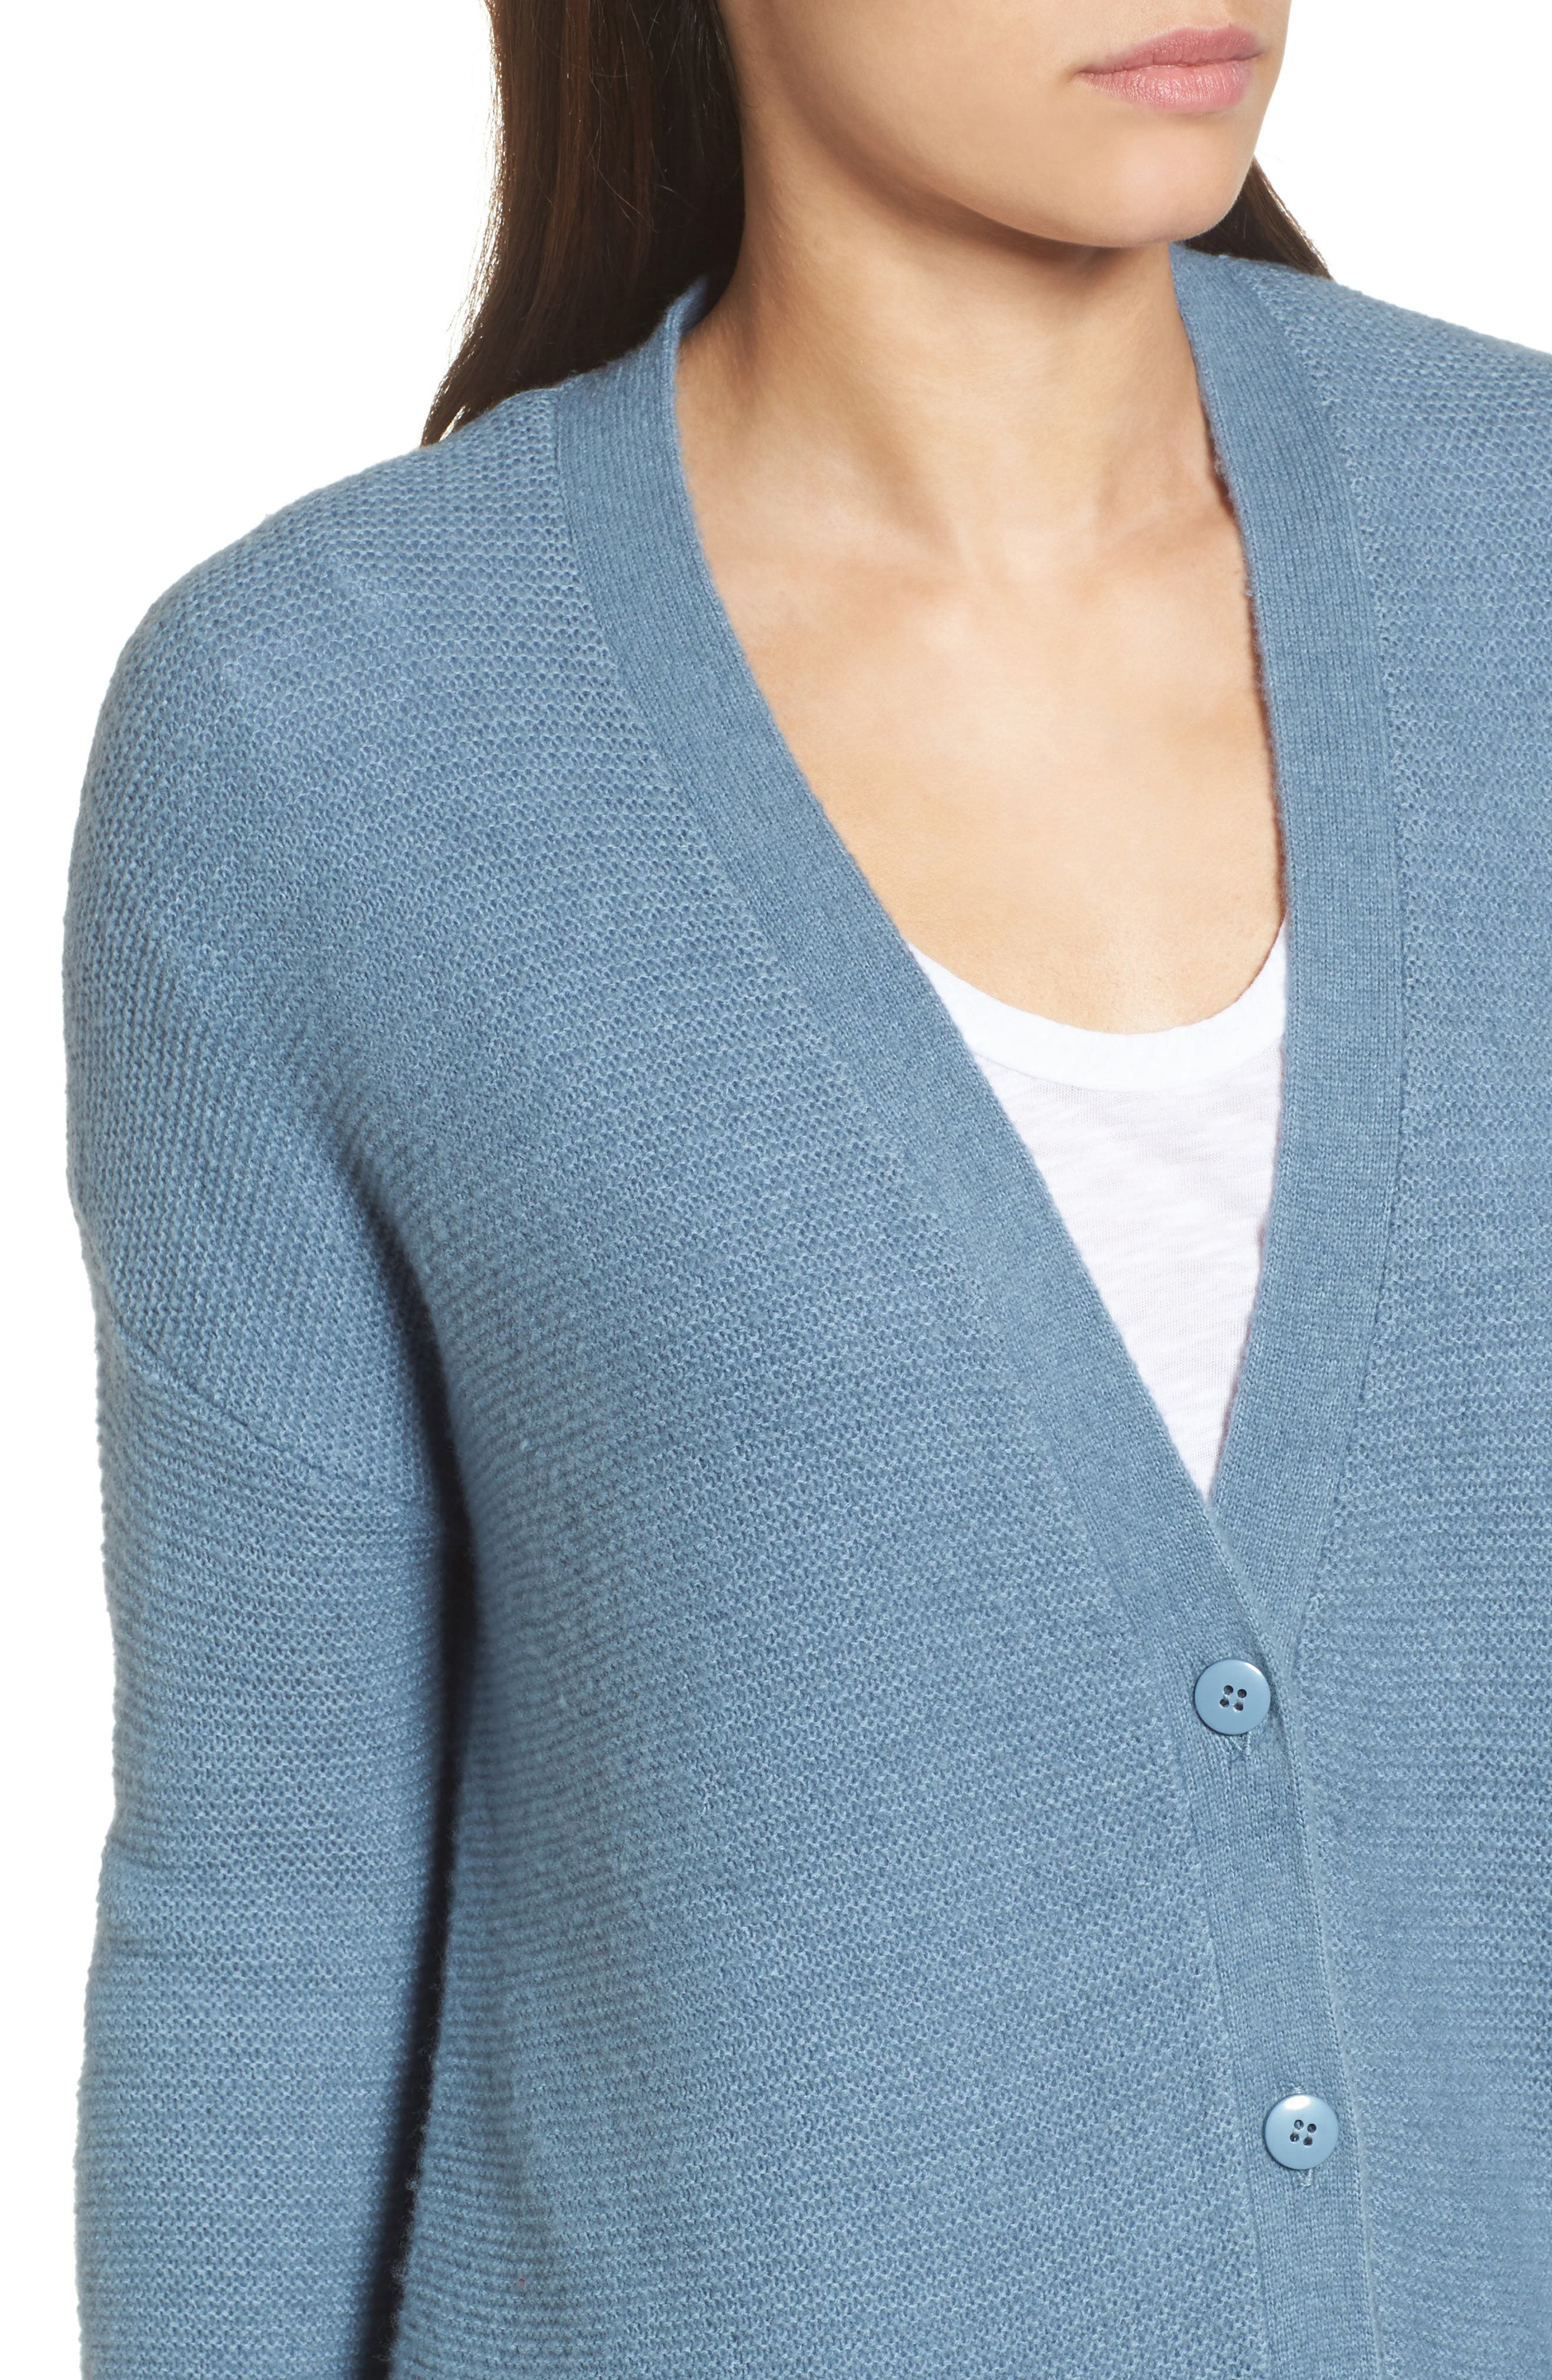 Relaxed Boyfriend Cardigan,                             Alternate thumbnail 27, color,